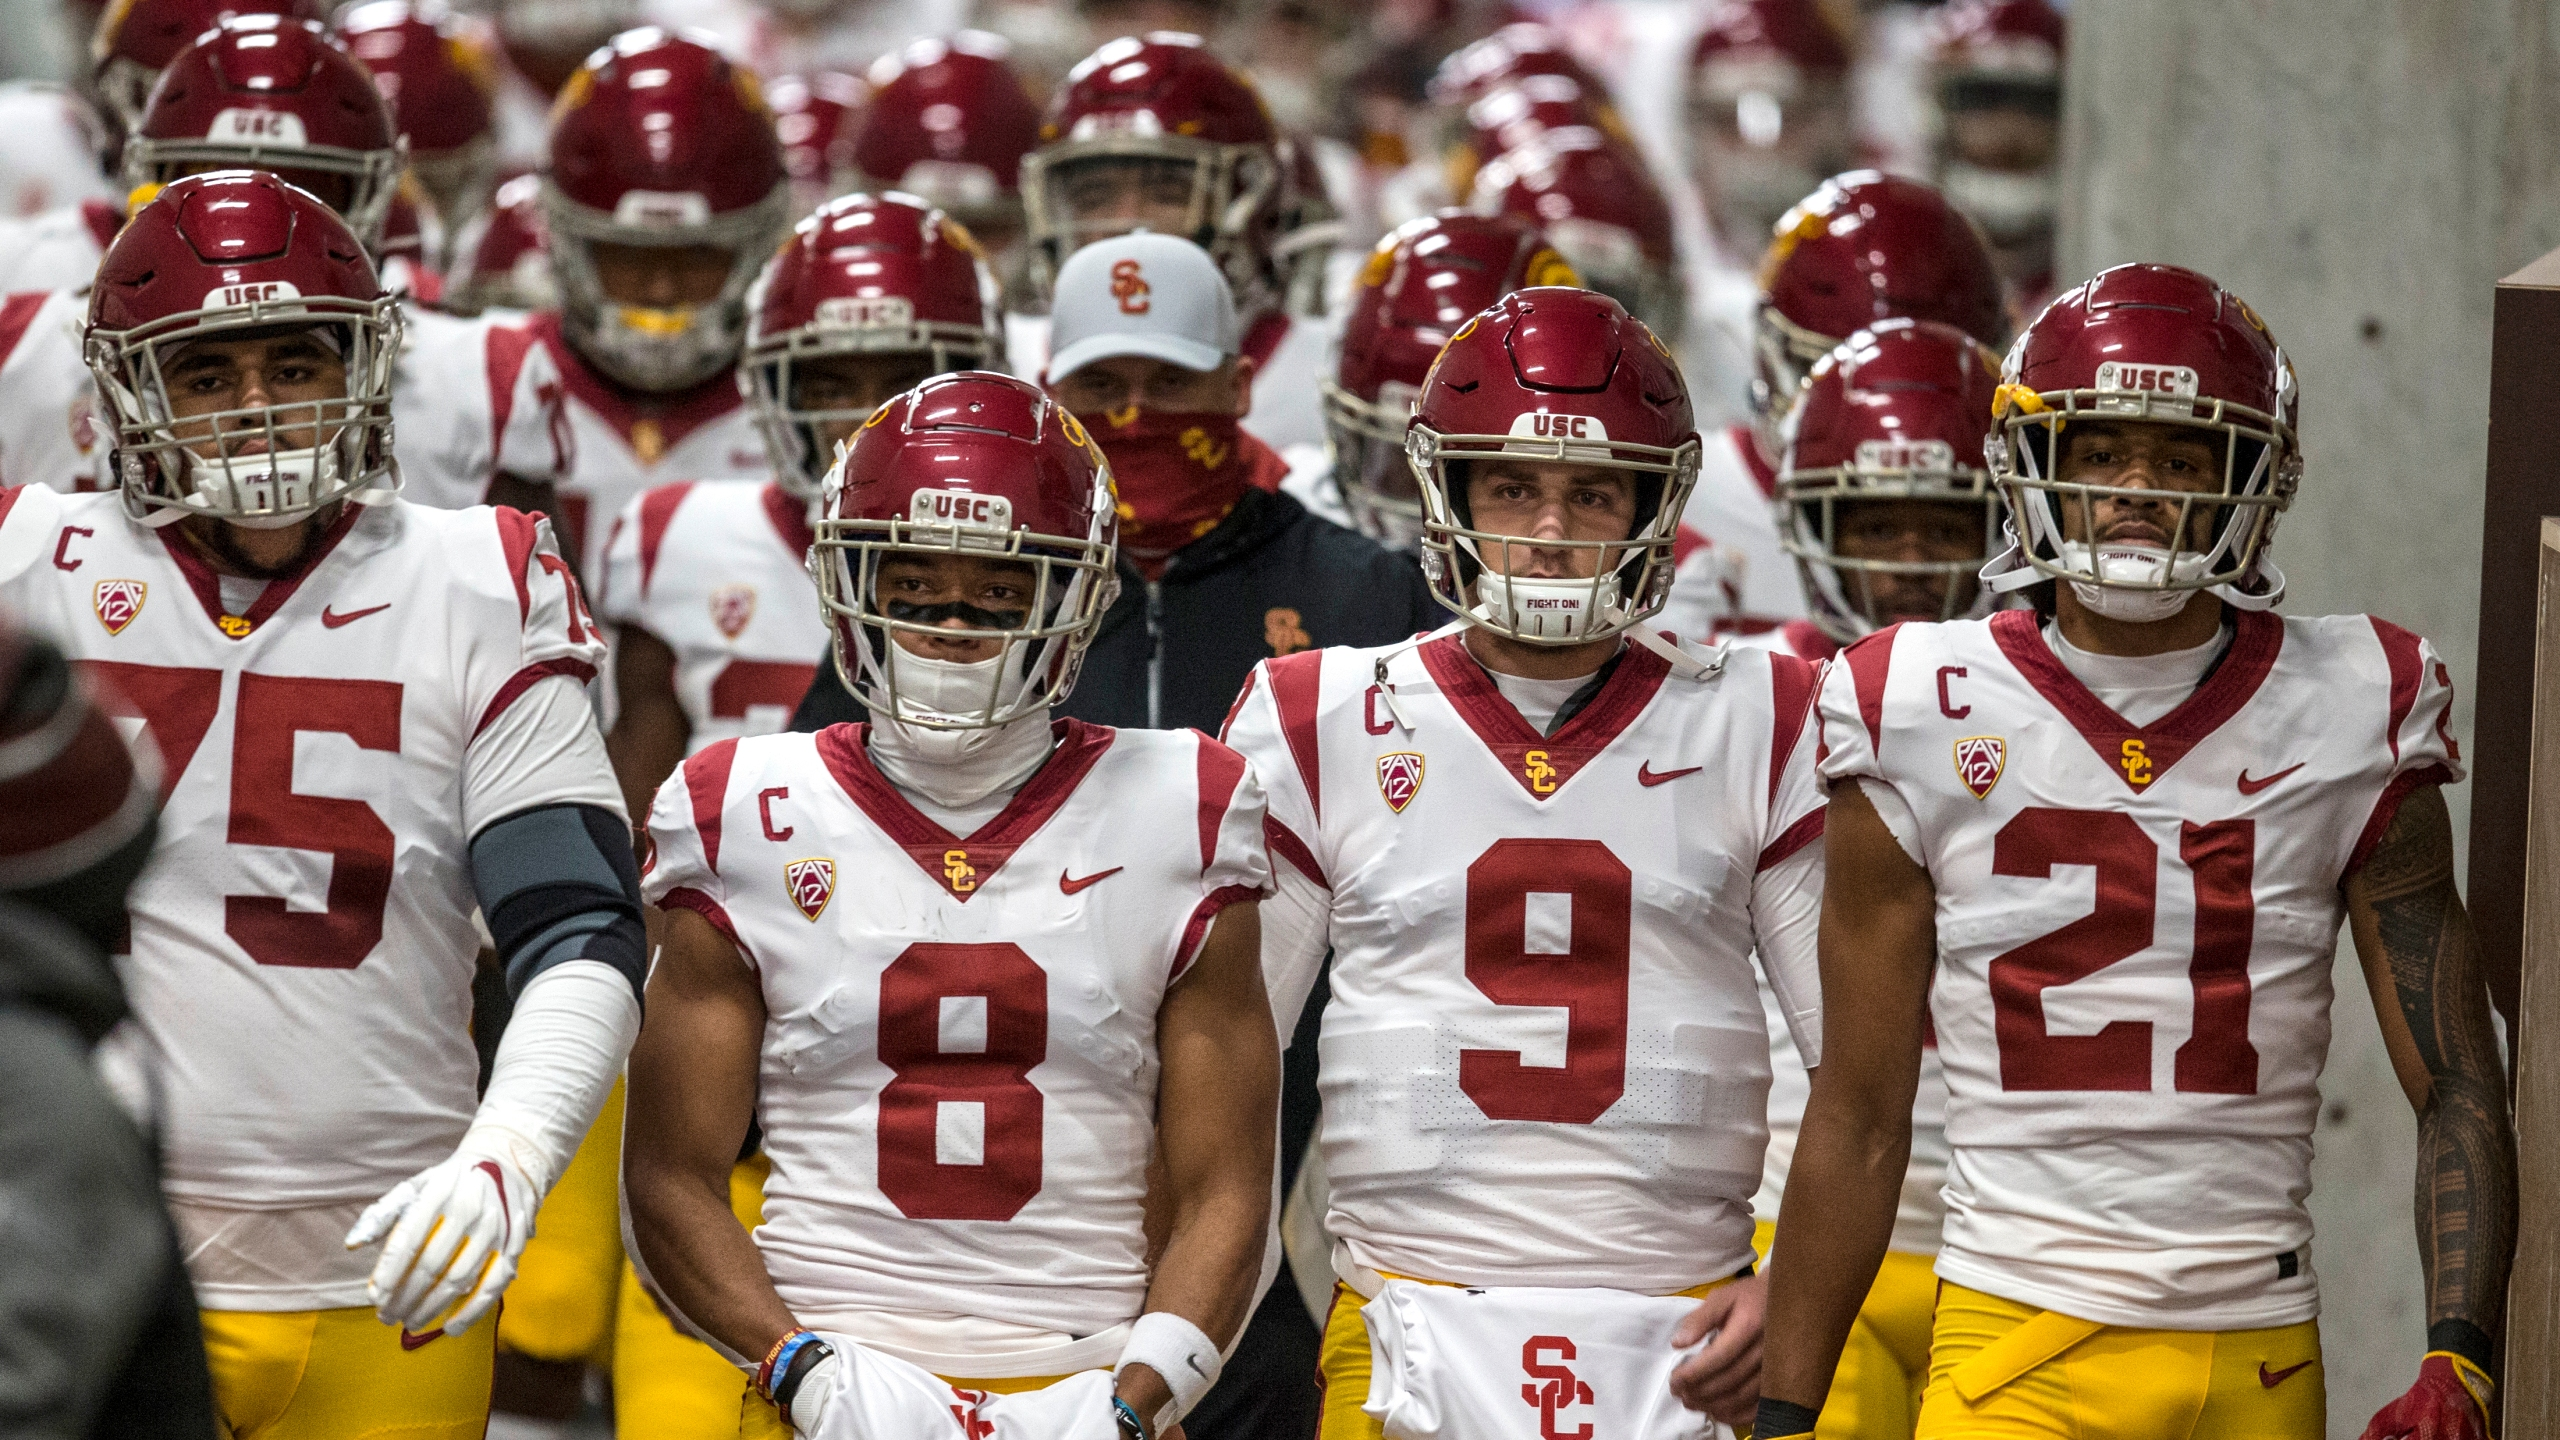 Alijah Vera-Tucker #75, Amon-Ra St. Brown #8, Kedon Slovis #9 and Tyler Vaughns #21 of the USC Trojans lead their team down the tunnel to the field before the start of their game against the Utah Utes November 21, 2020 at Rice Eccles Stadium in Salt Lake City, Utah. (Chris Gardner/Getty Images)